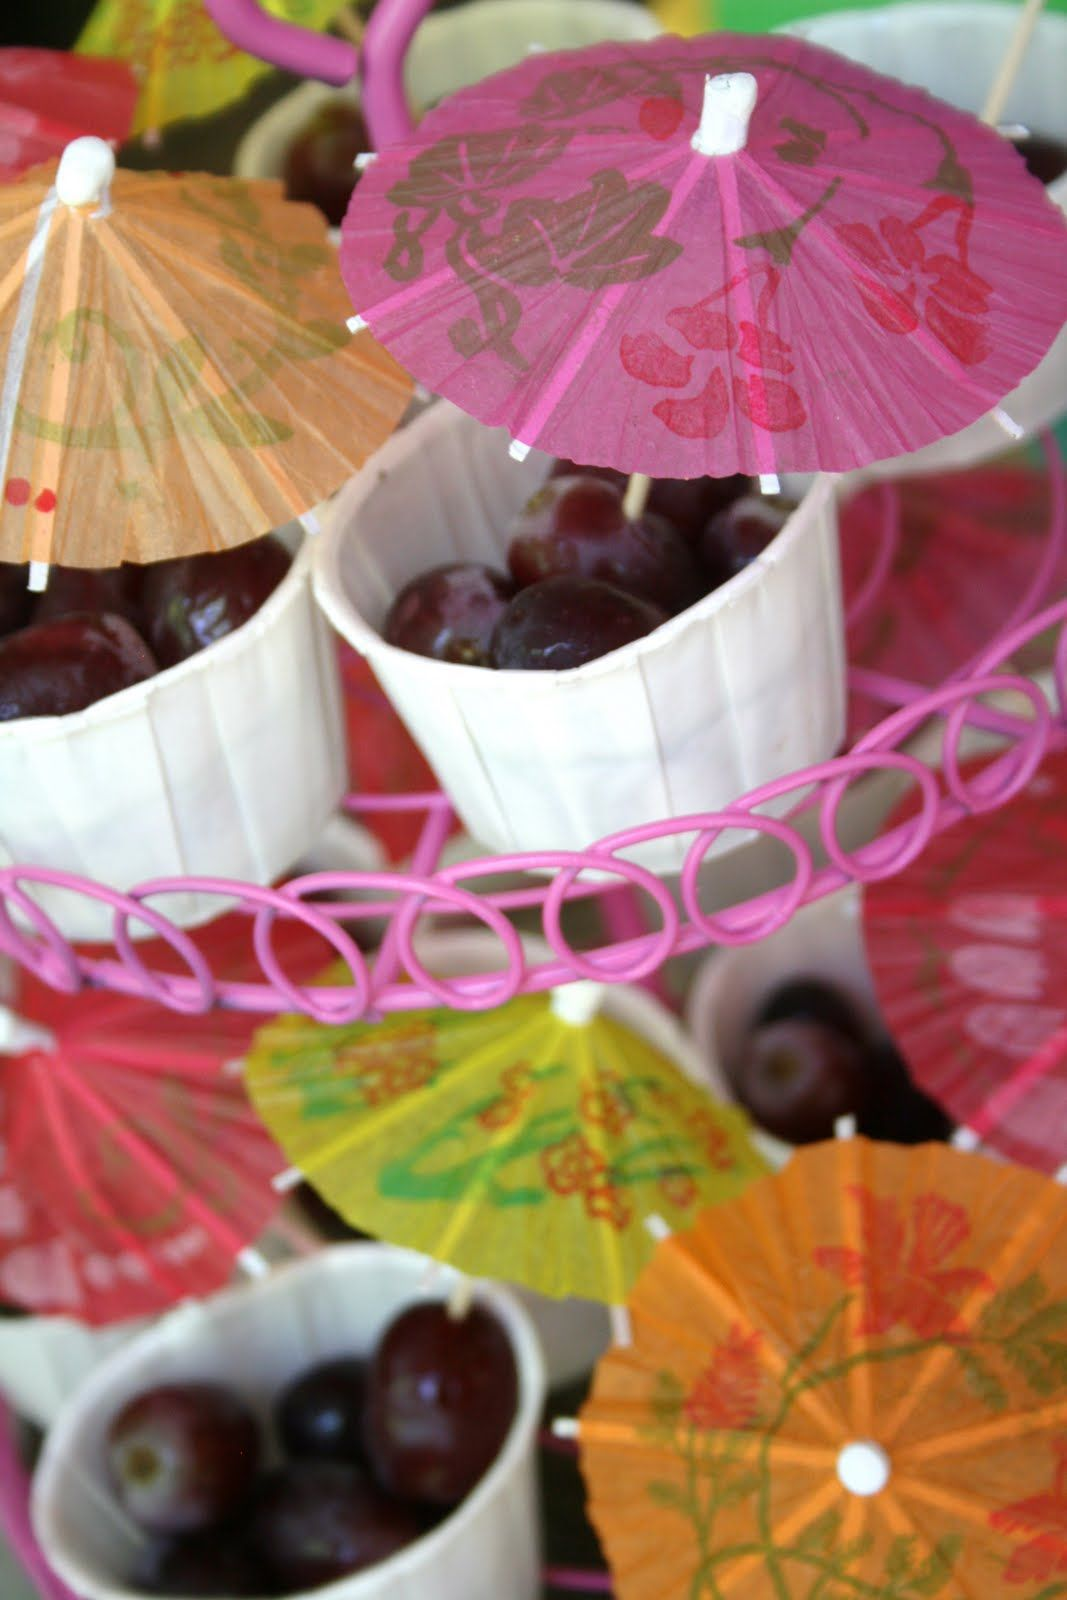 pool party idea. Grapes in paper cup with umbrellas | Party ...